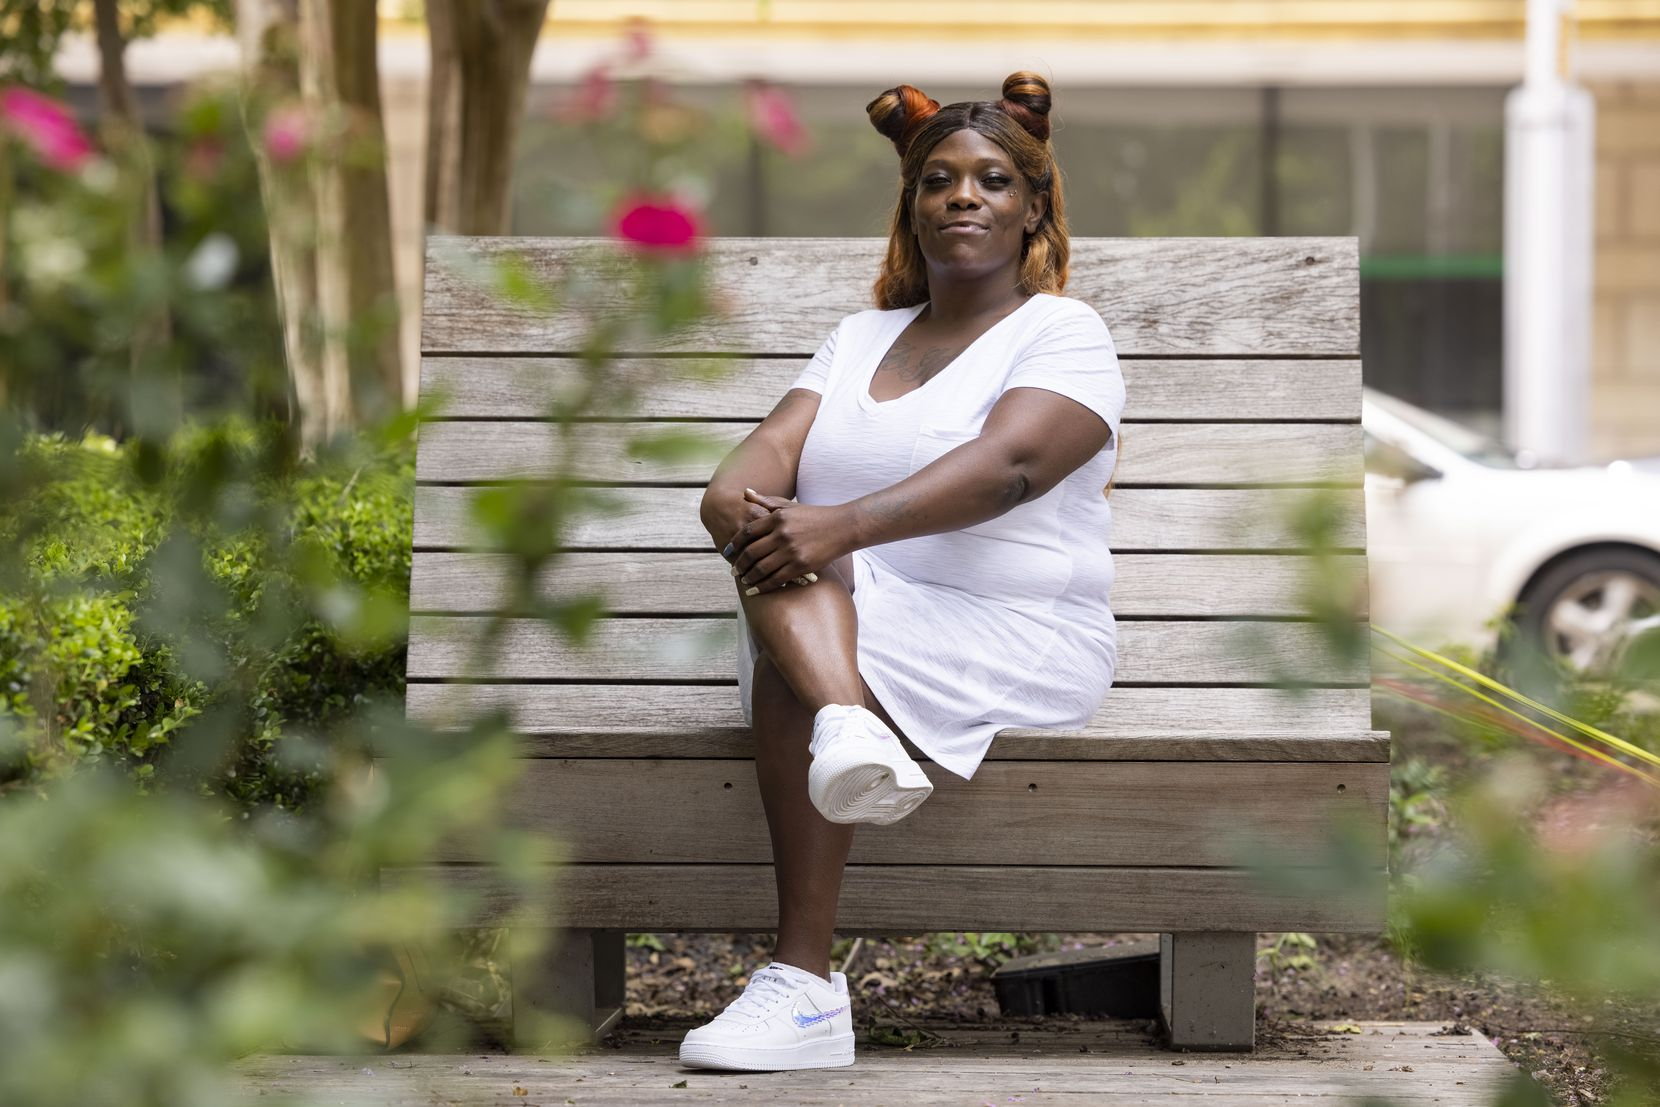 Sydnee Walker realized after a few months living at The Cottages at Hickory Crossing that the rules and regulations didn't sit well with her, especially the 11 p.m. curfew.